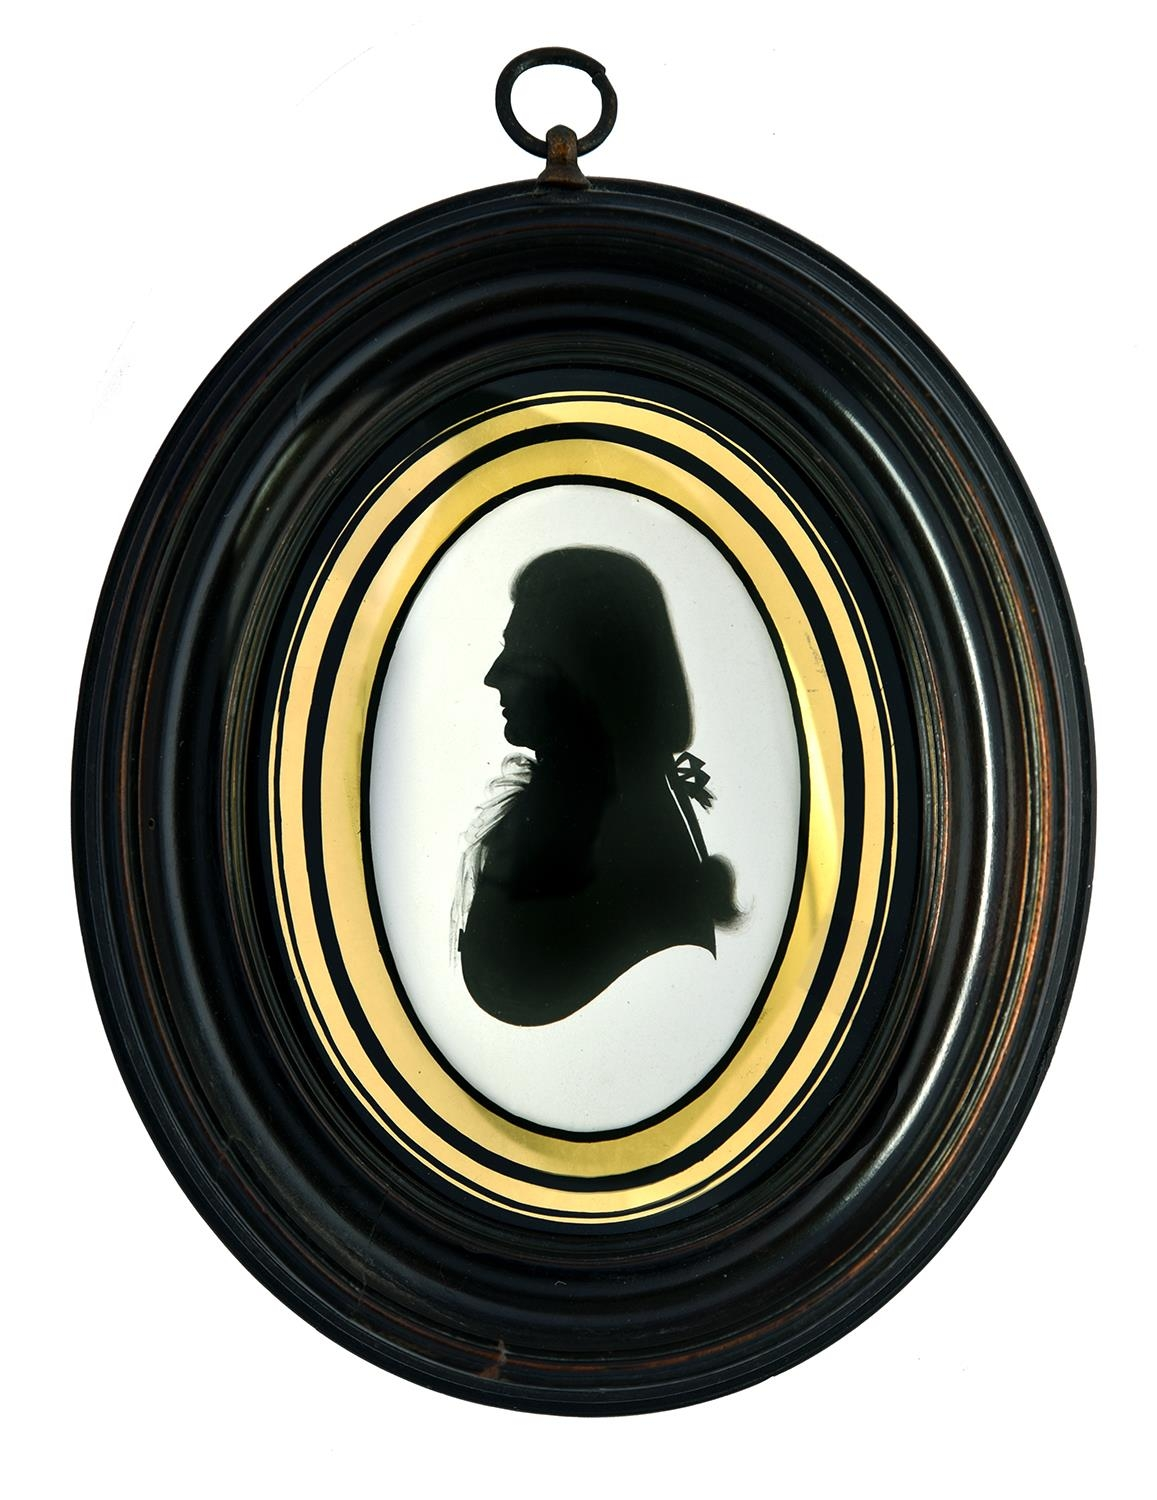 Houghtonand Bruce(fl. c1792-1796) - Silhouette of a Gentleman, wearing his hair in a 'military